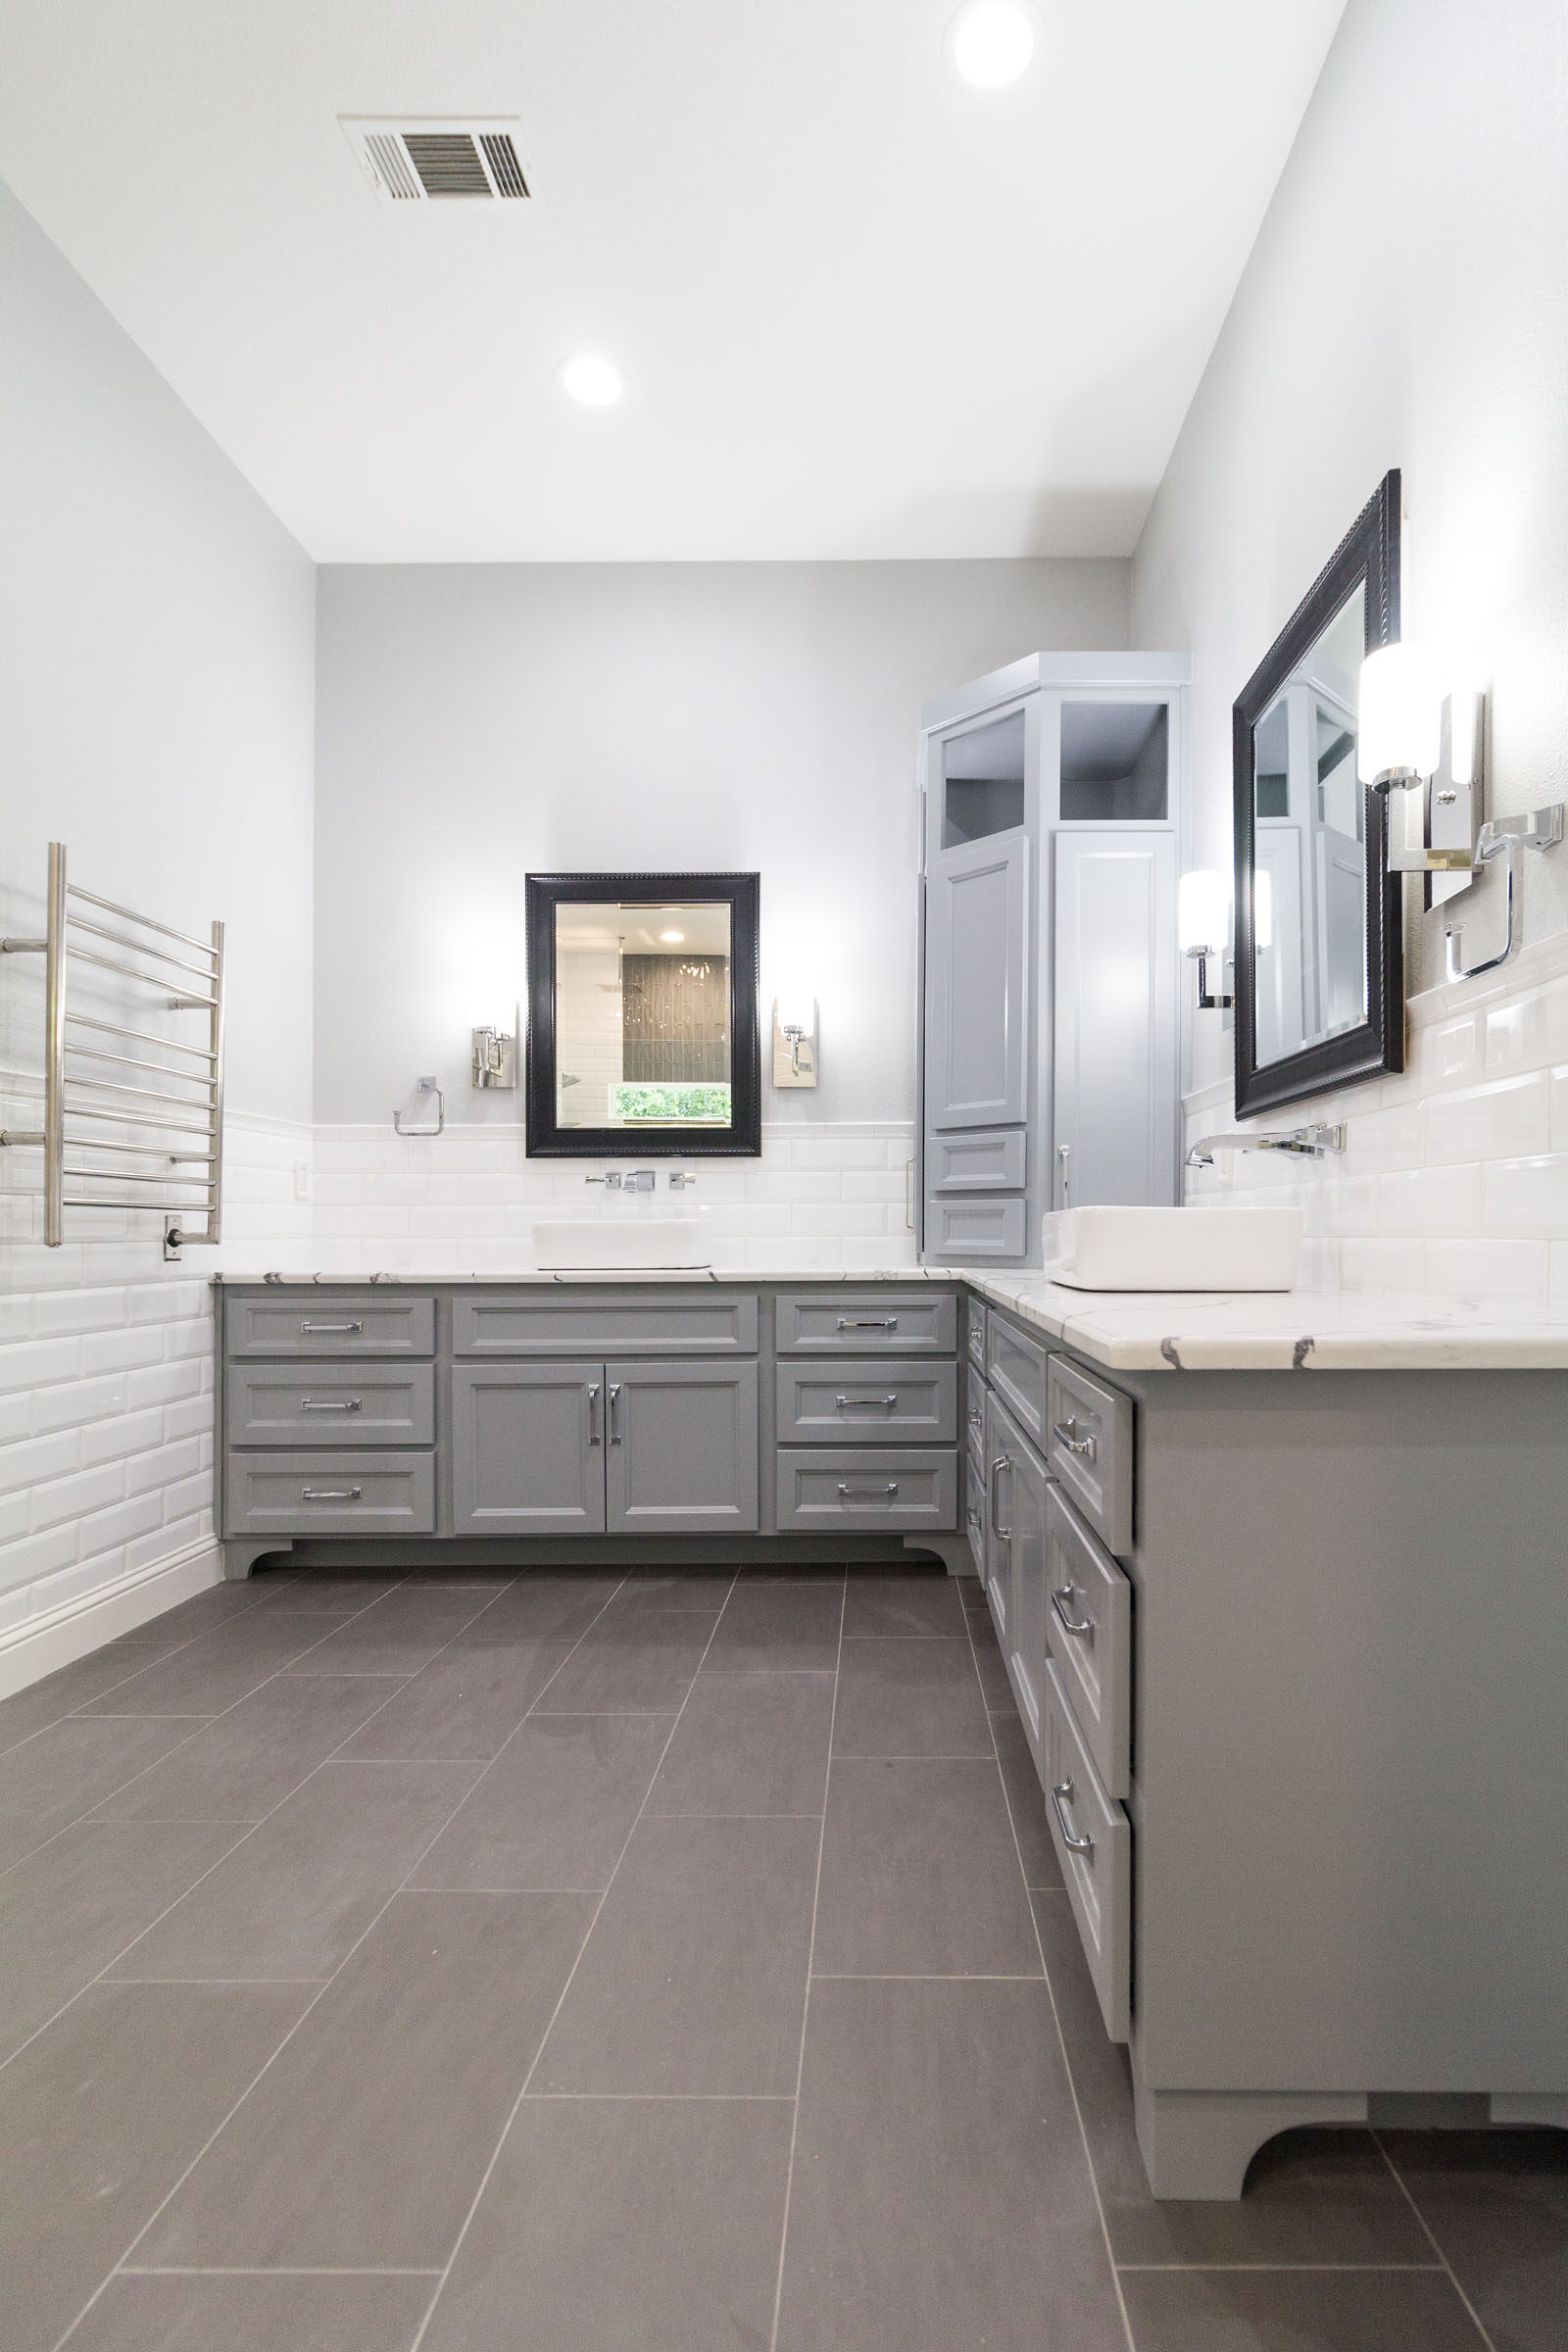 Contemporary bathroom remodel wide angle shot